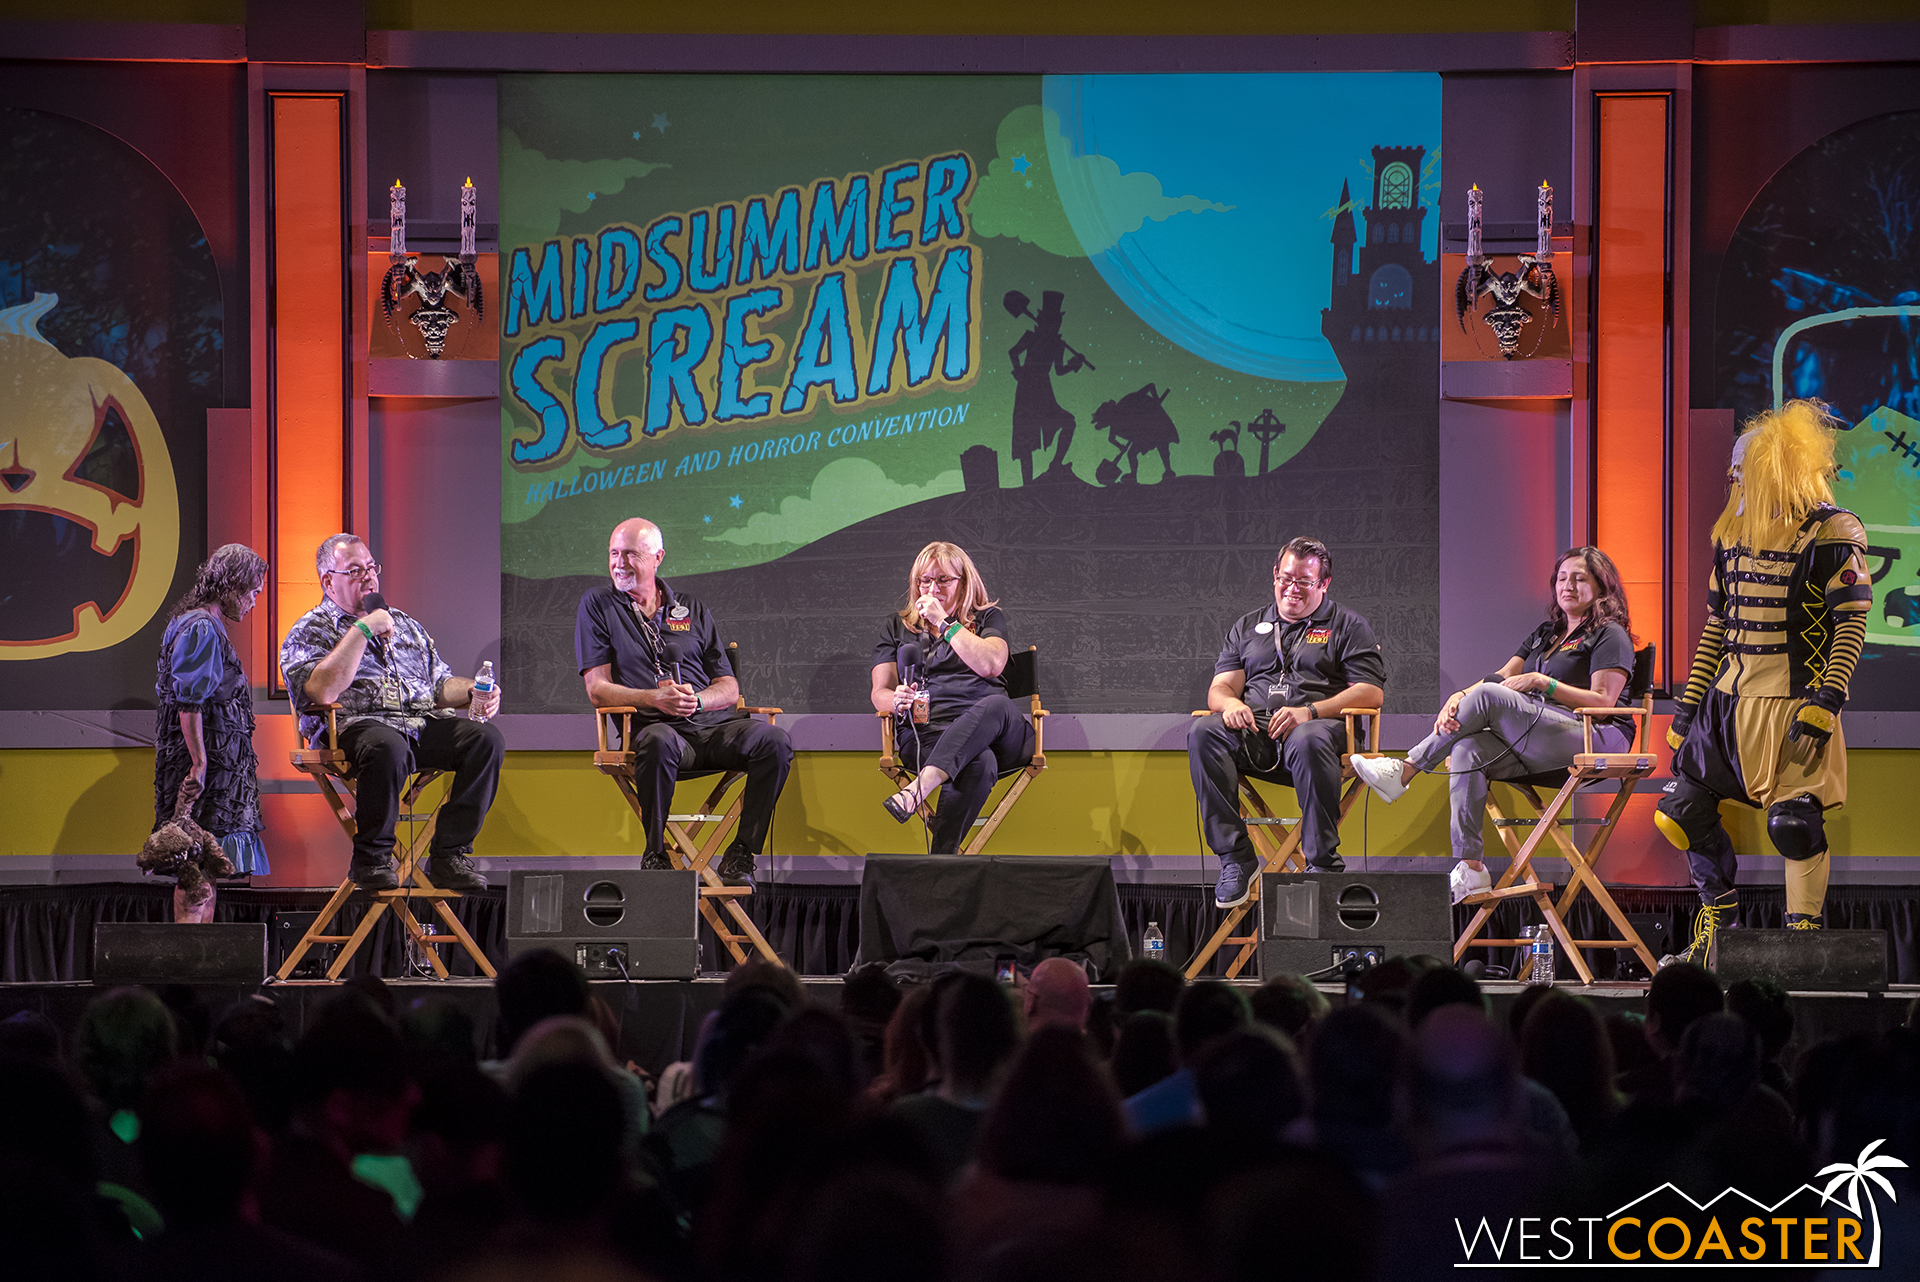 Six Flags Magic Mountain Fright Fest spilled all the beans on this year's event and brought some creatures to help reinforce their mission to scare.